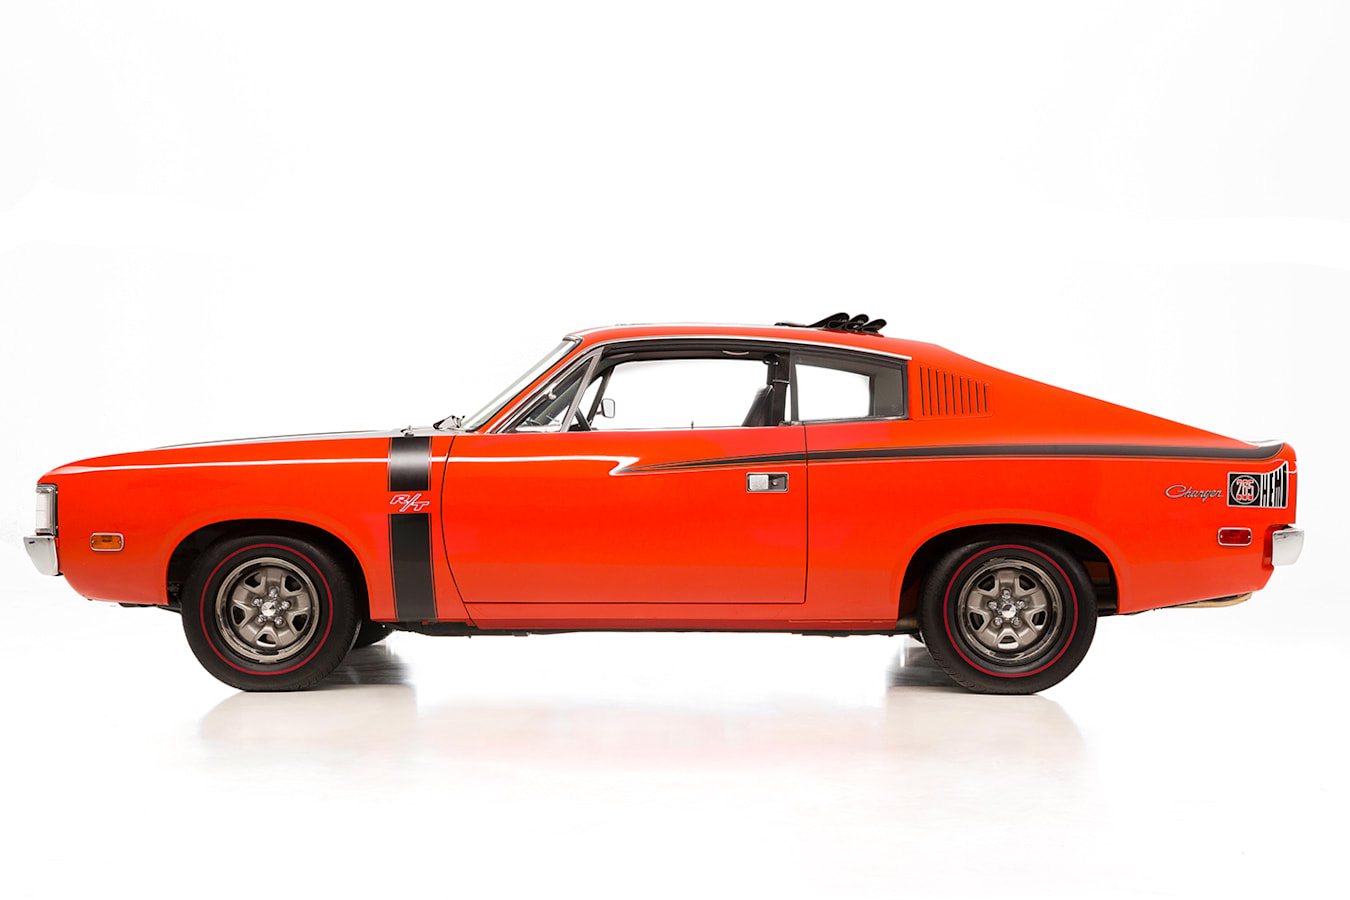 Valiant Charger side view